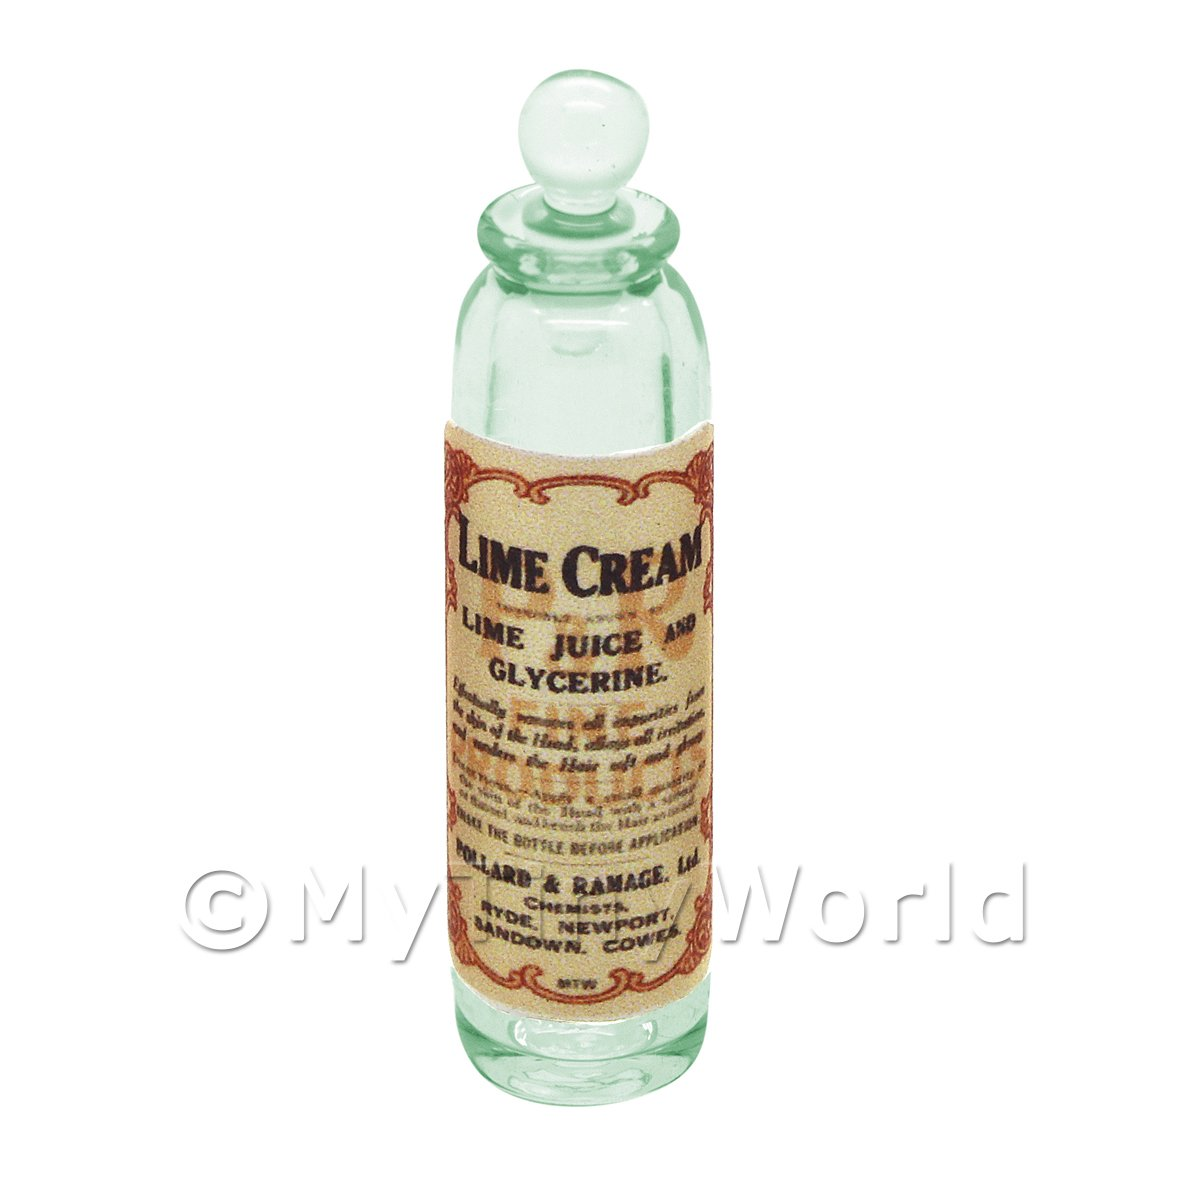 Miniature Lime Cream Green Glass Apothecary Bottle